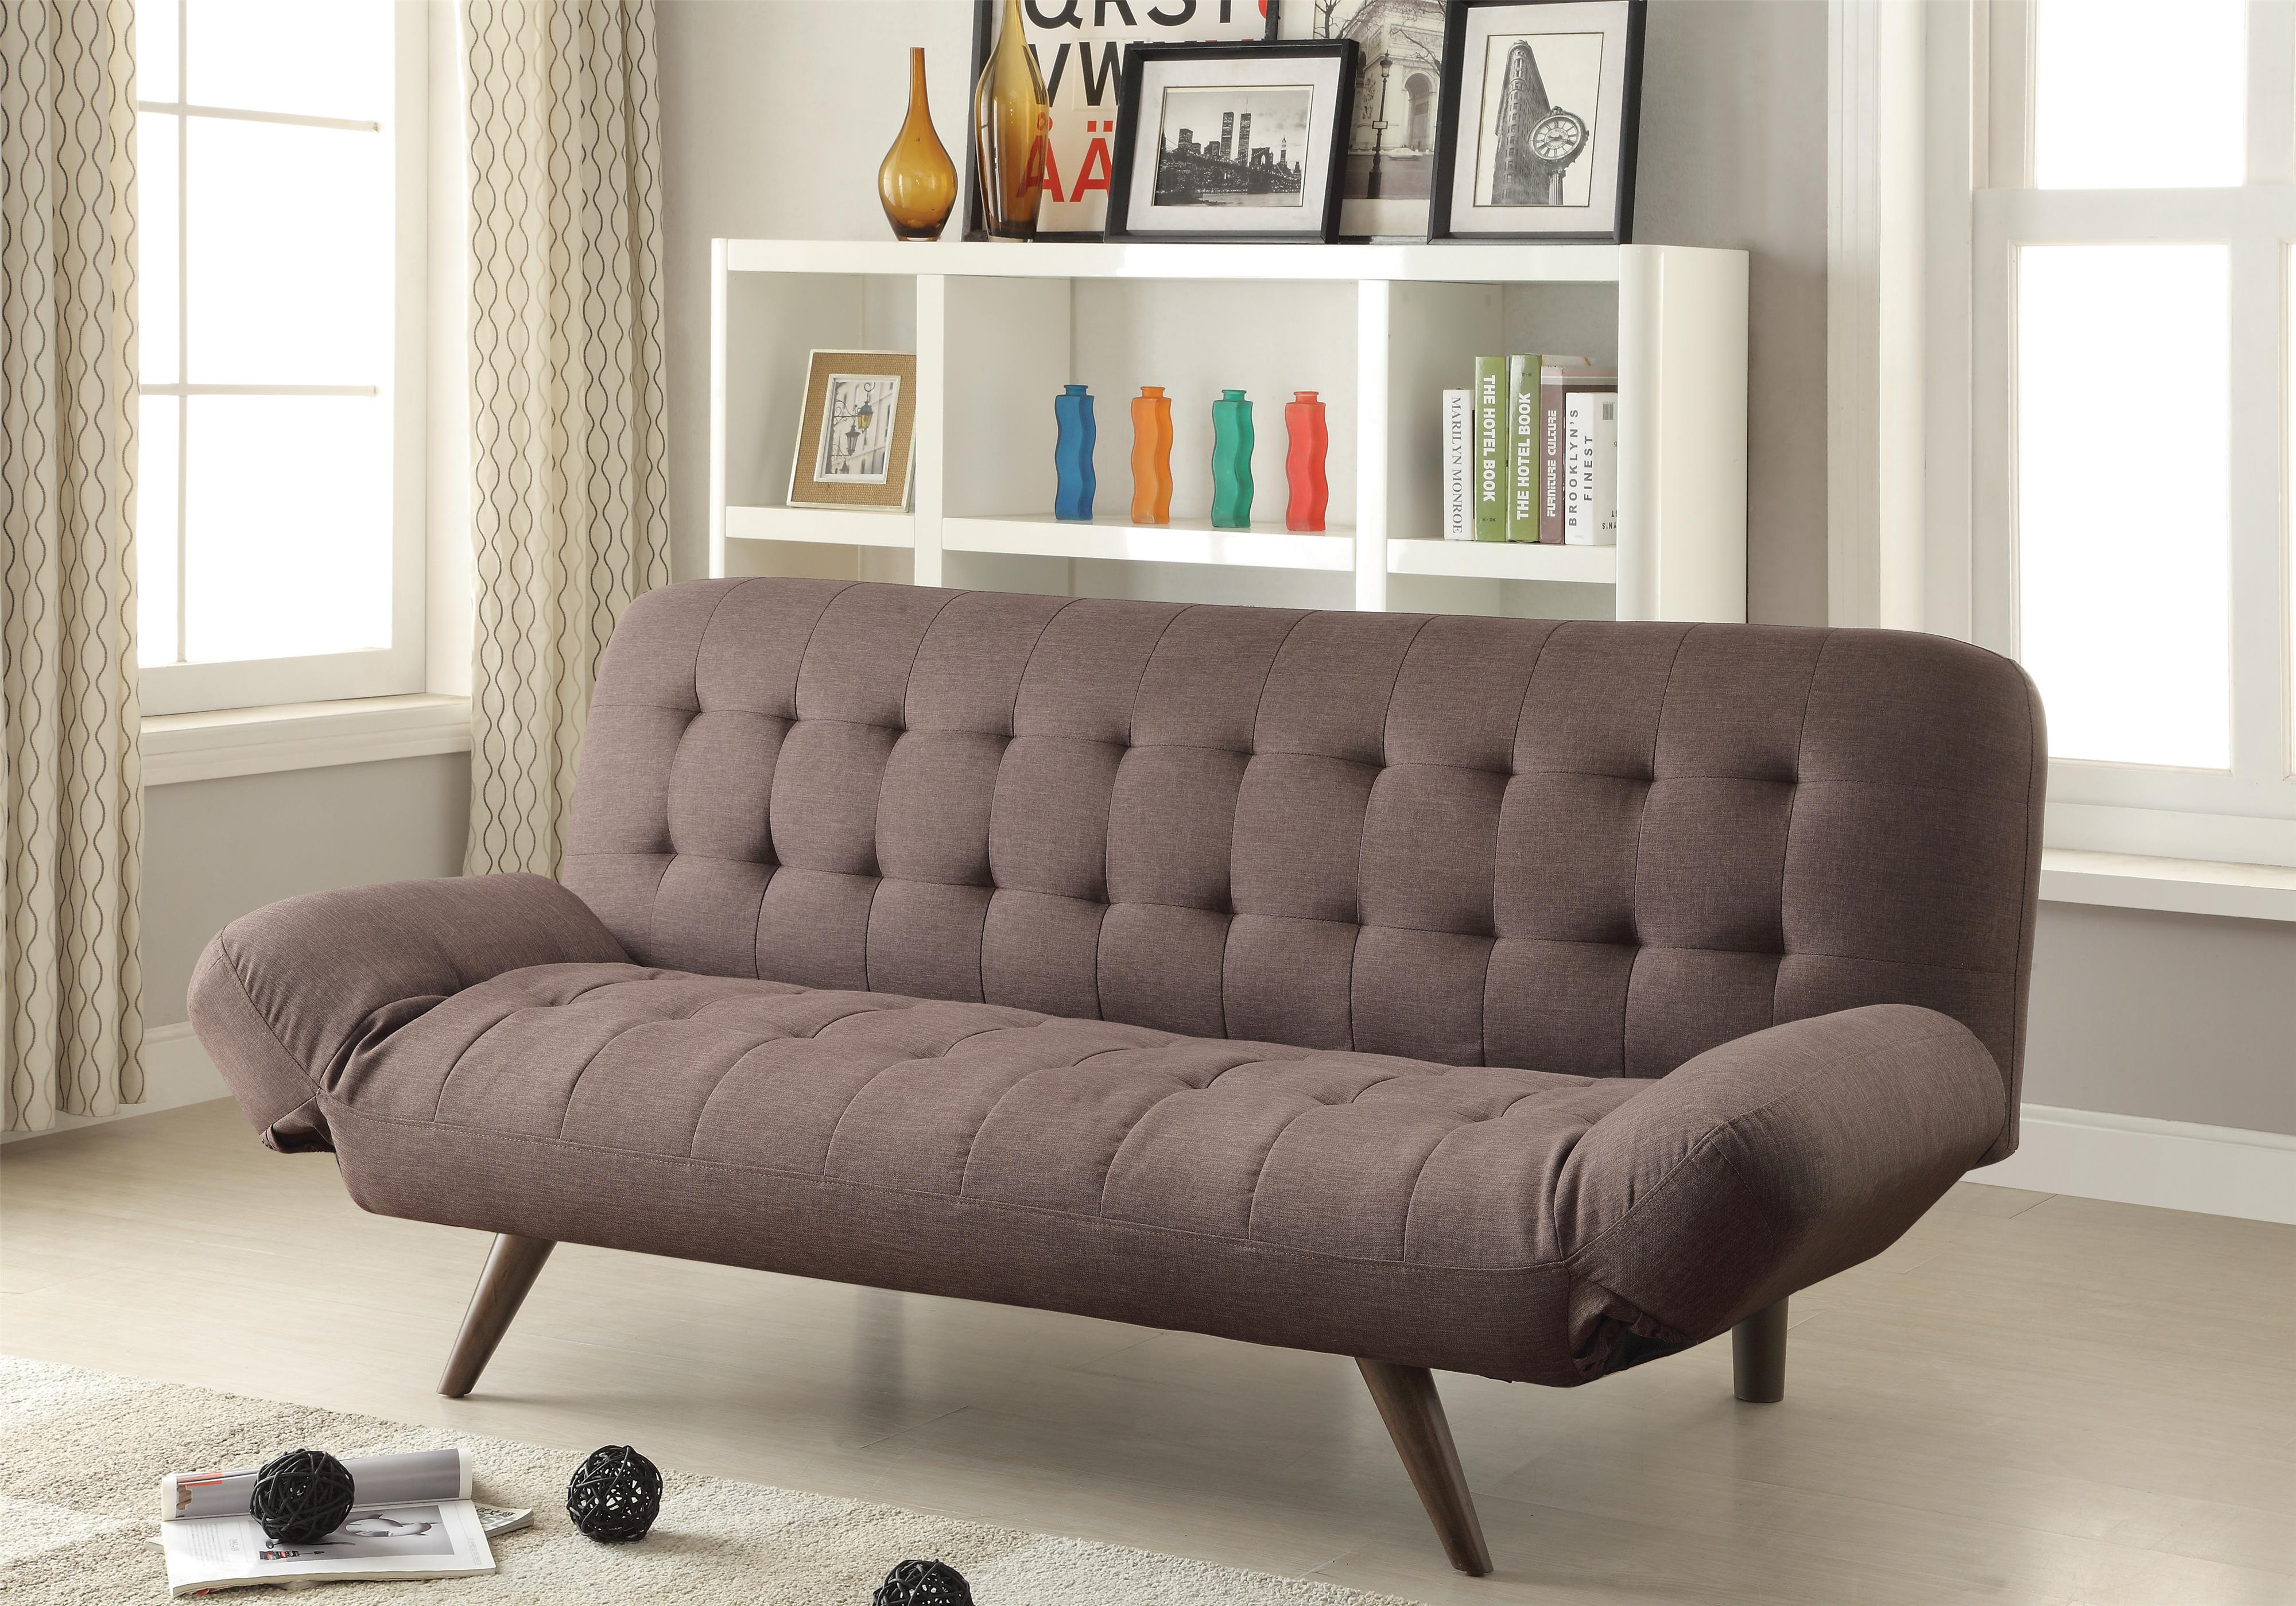 Sofa Cushions Are Flat Sofa Beds And Futons Retro Modern Sofa Bed With Tufting